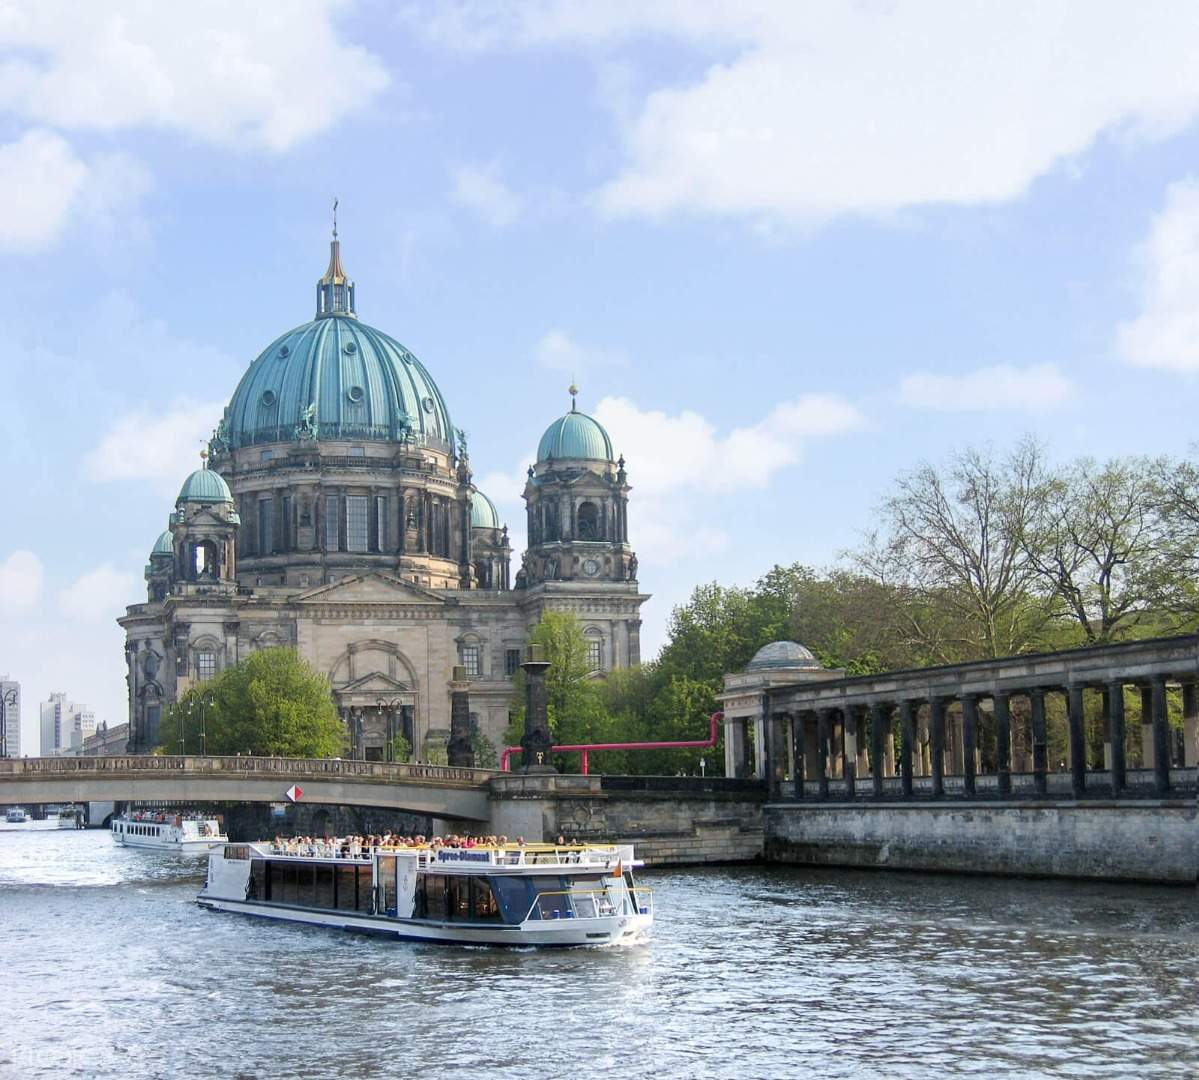 hop-on hop-off sightseeing boat passing by the berliner dom